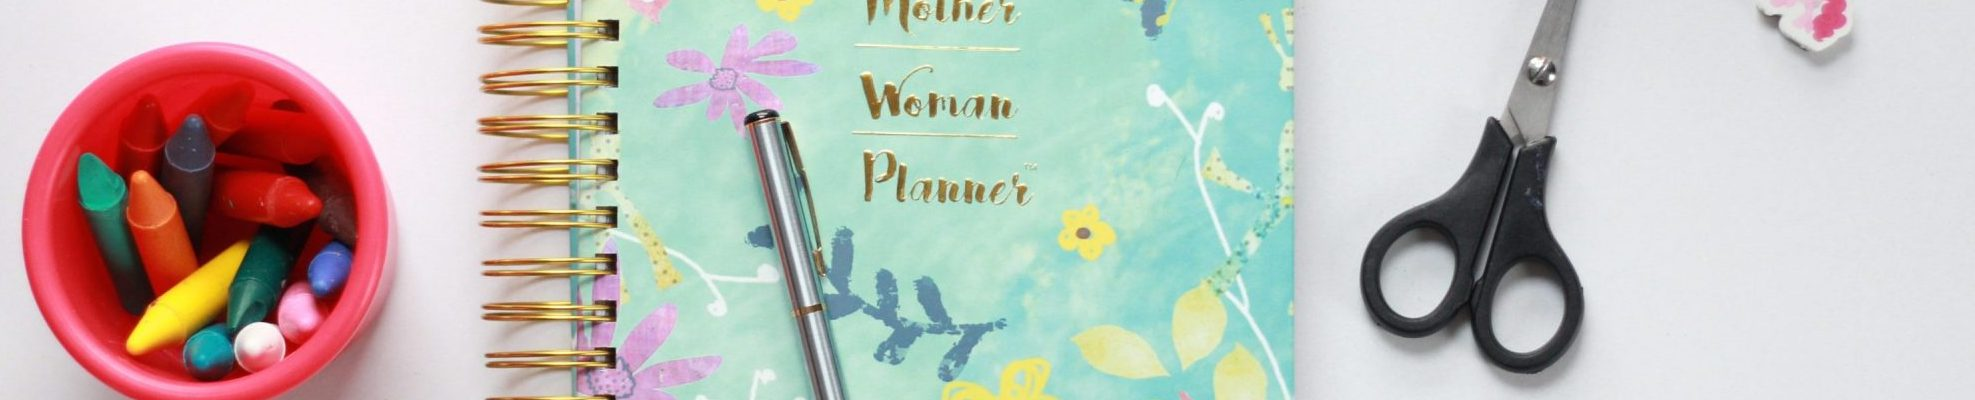 The Ultimate Planner for Busy Moms 2019- Mother. Woman. Planner.™